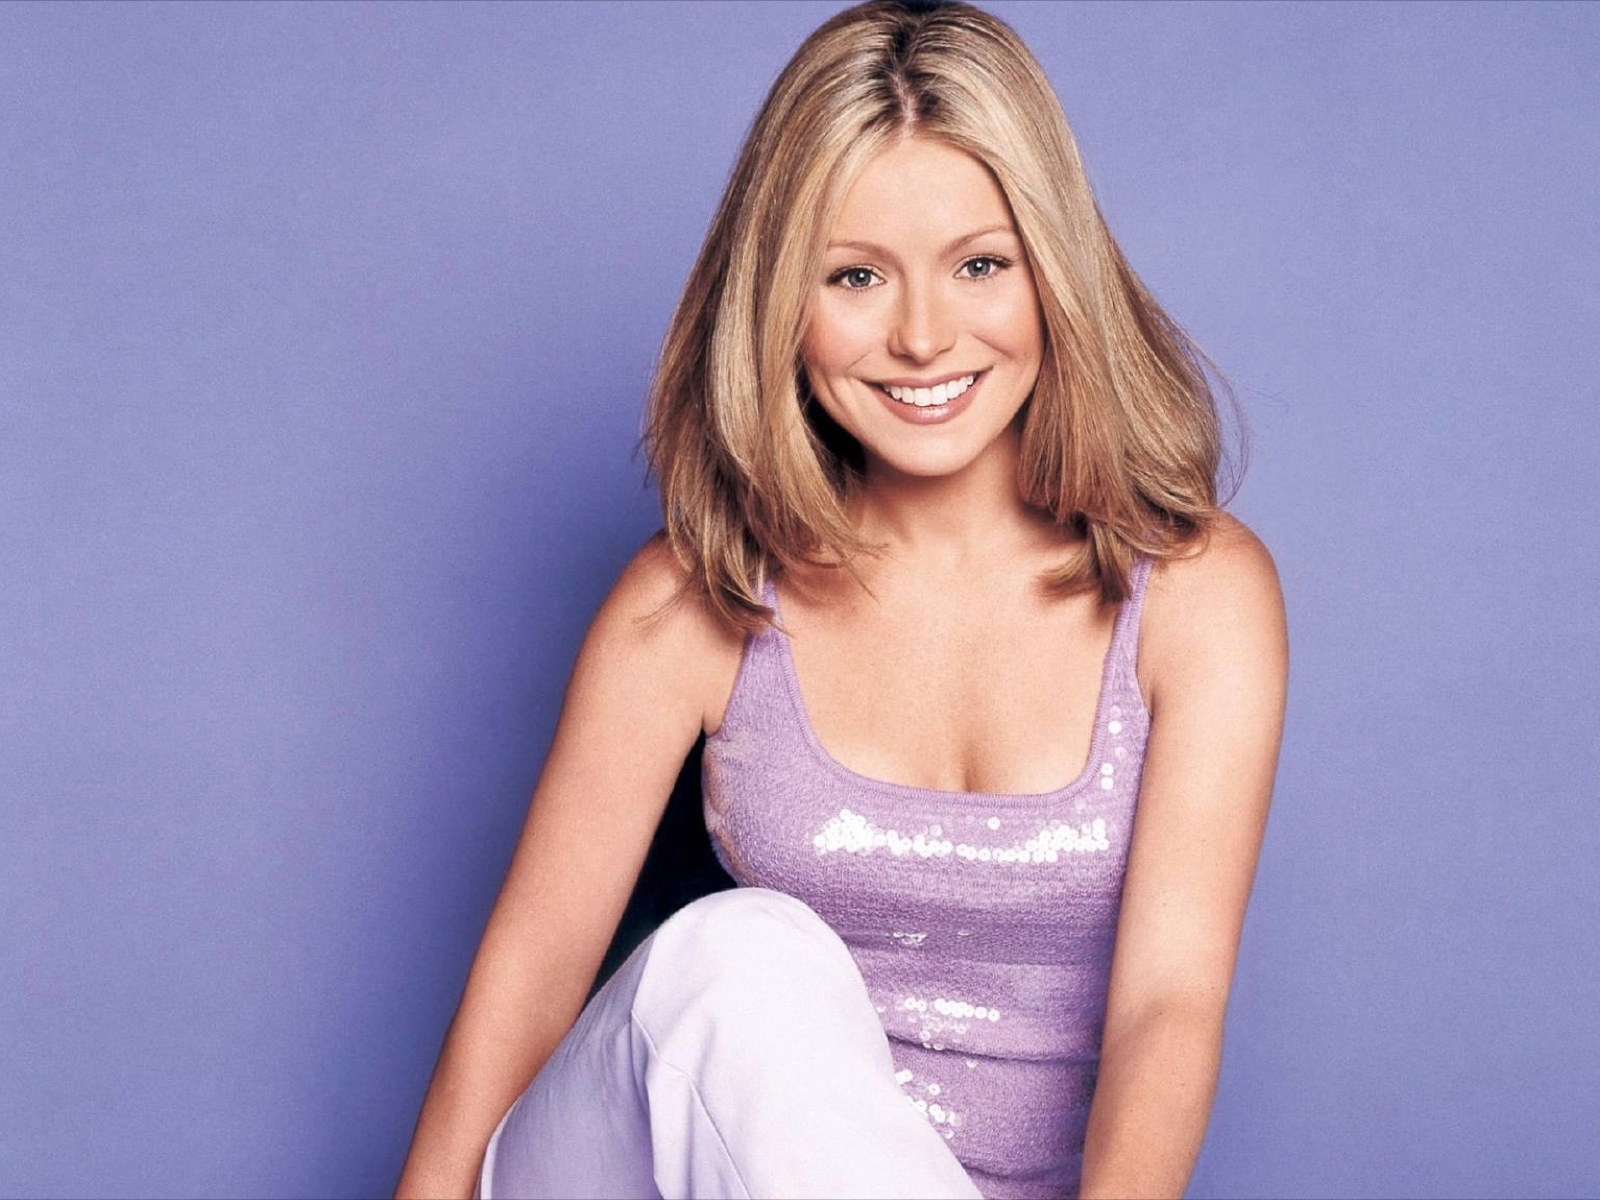 Kelly Ripa Hd Wallpaper